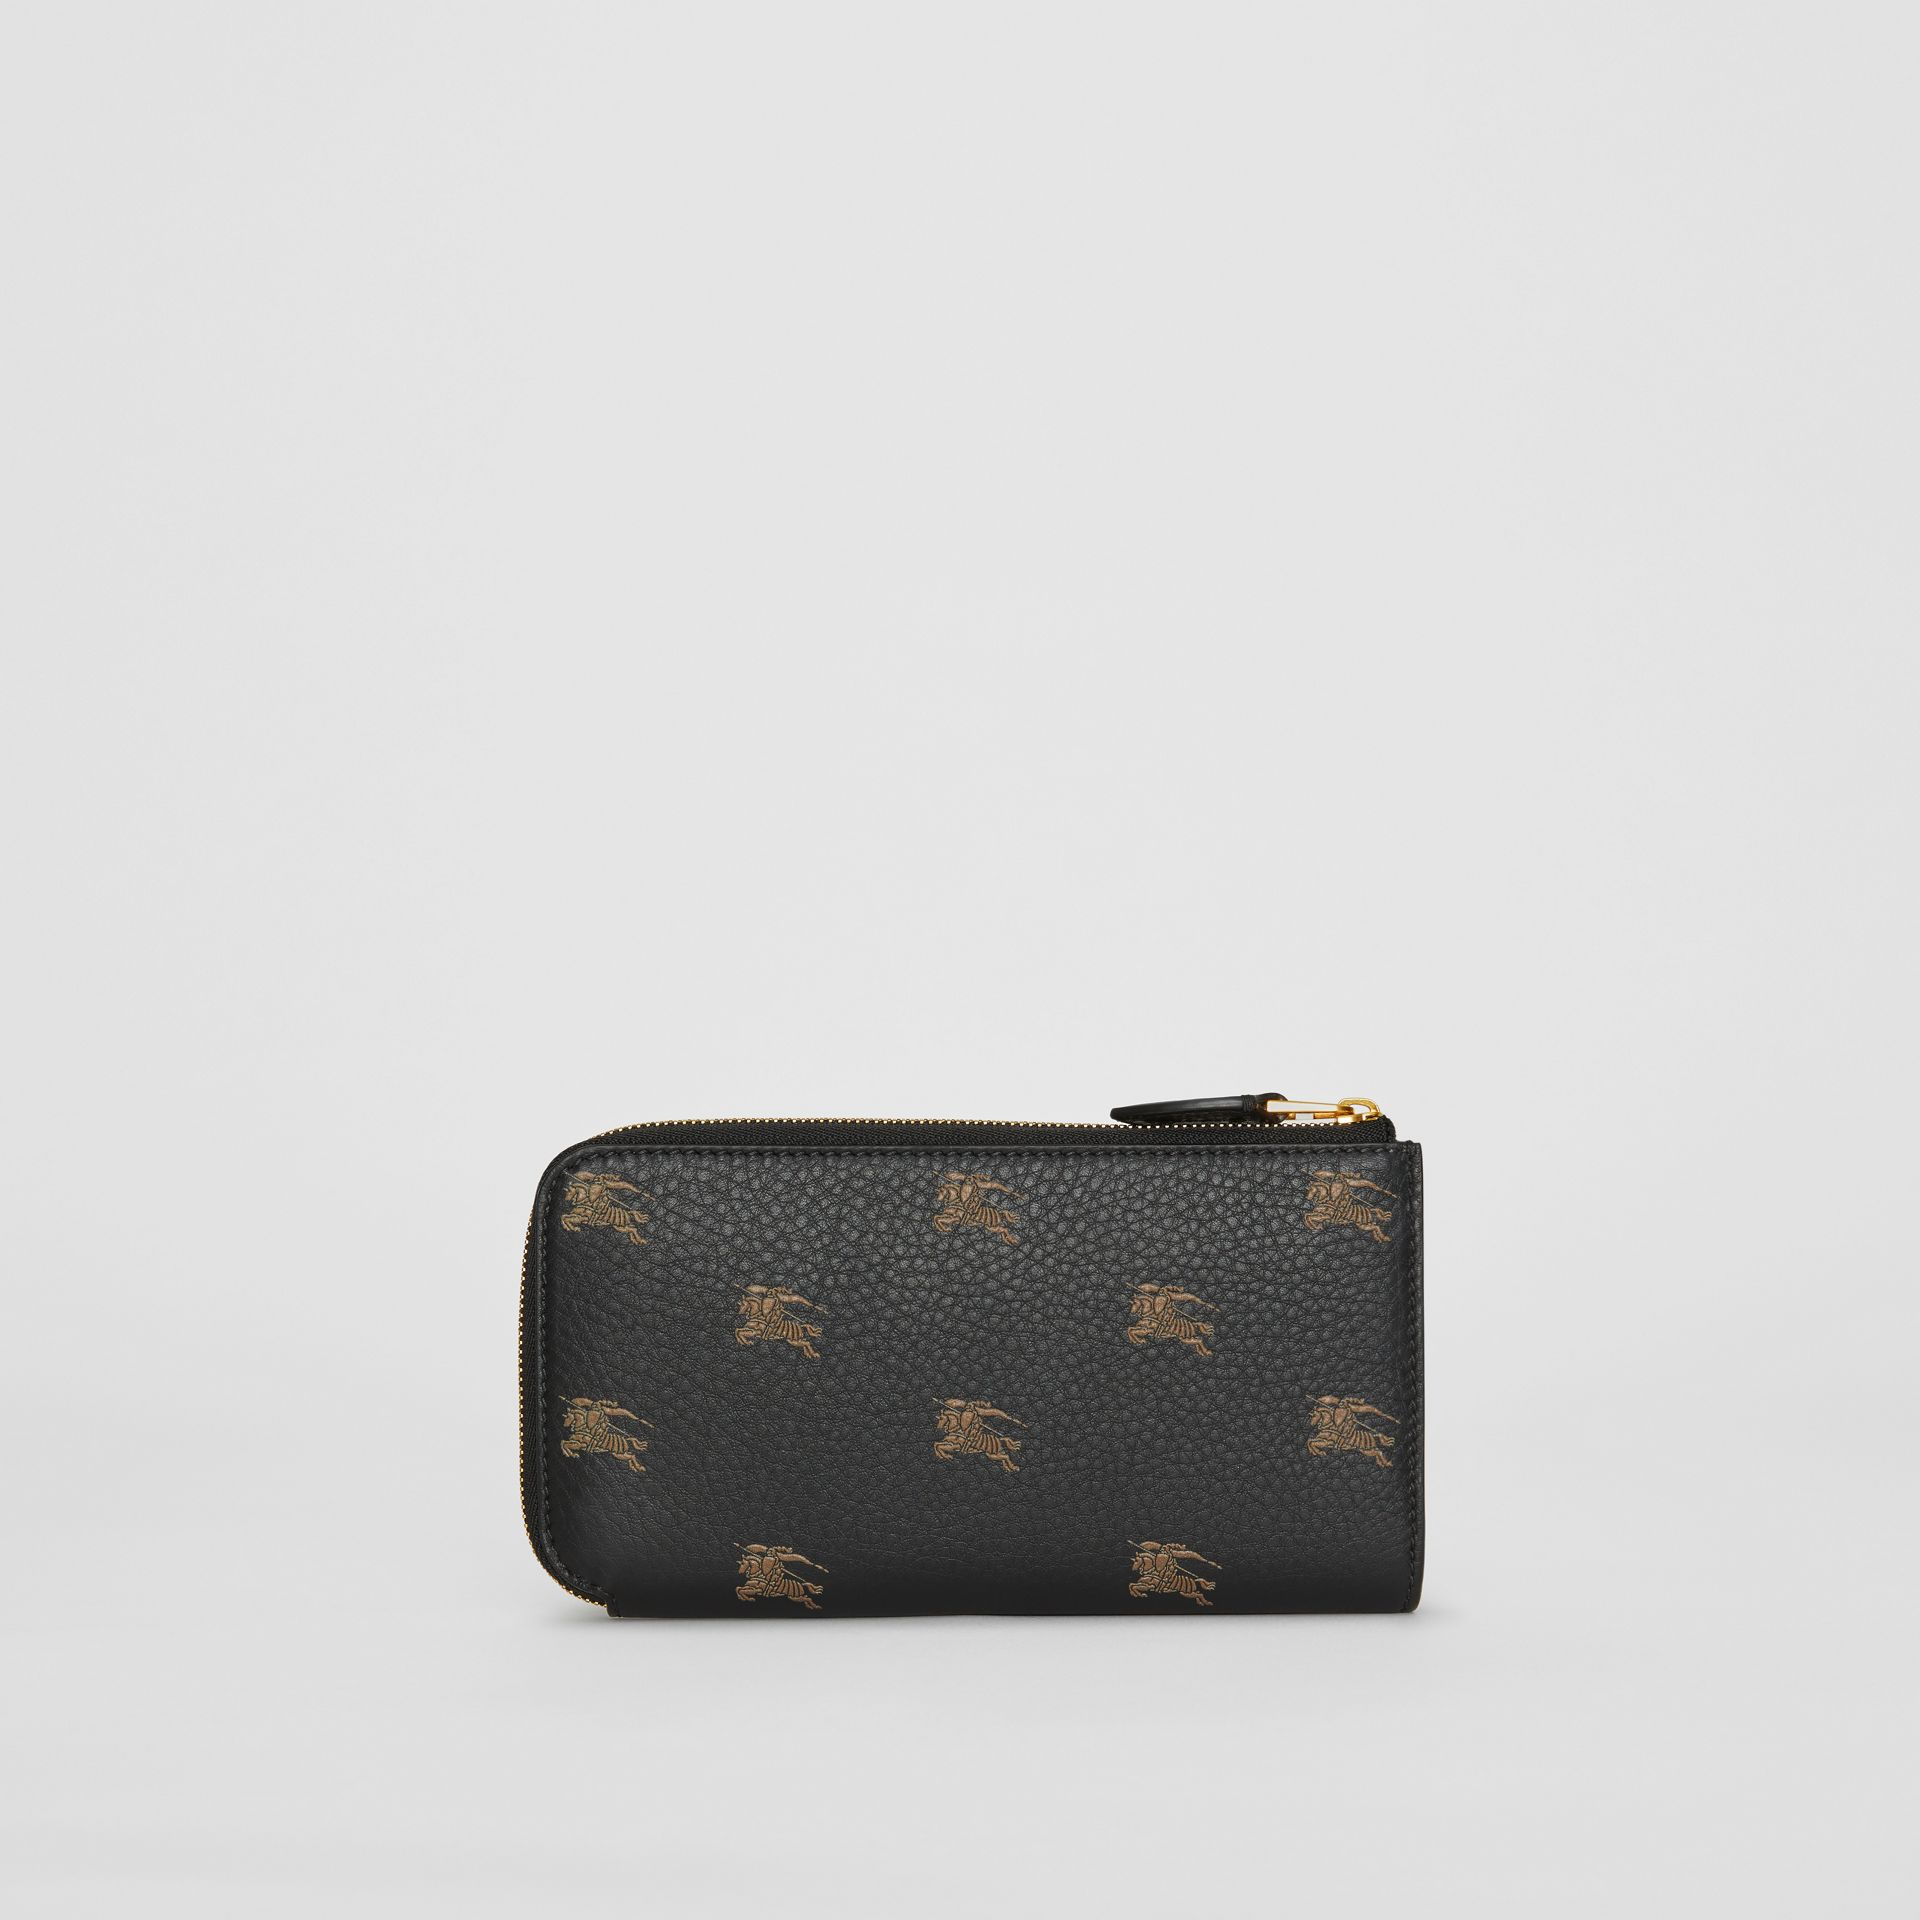 EKD Leather Ziparound Wallet and Coin Case in Black - Women | Burberry Australia - gallery image 6